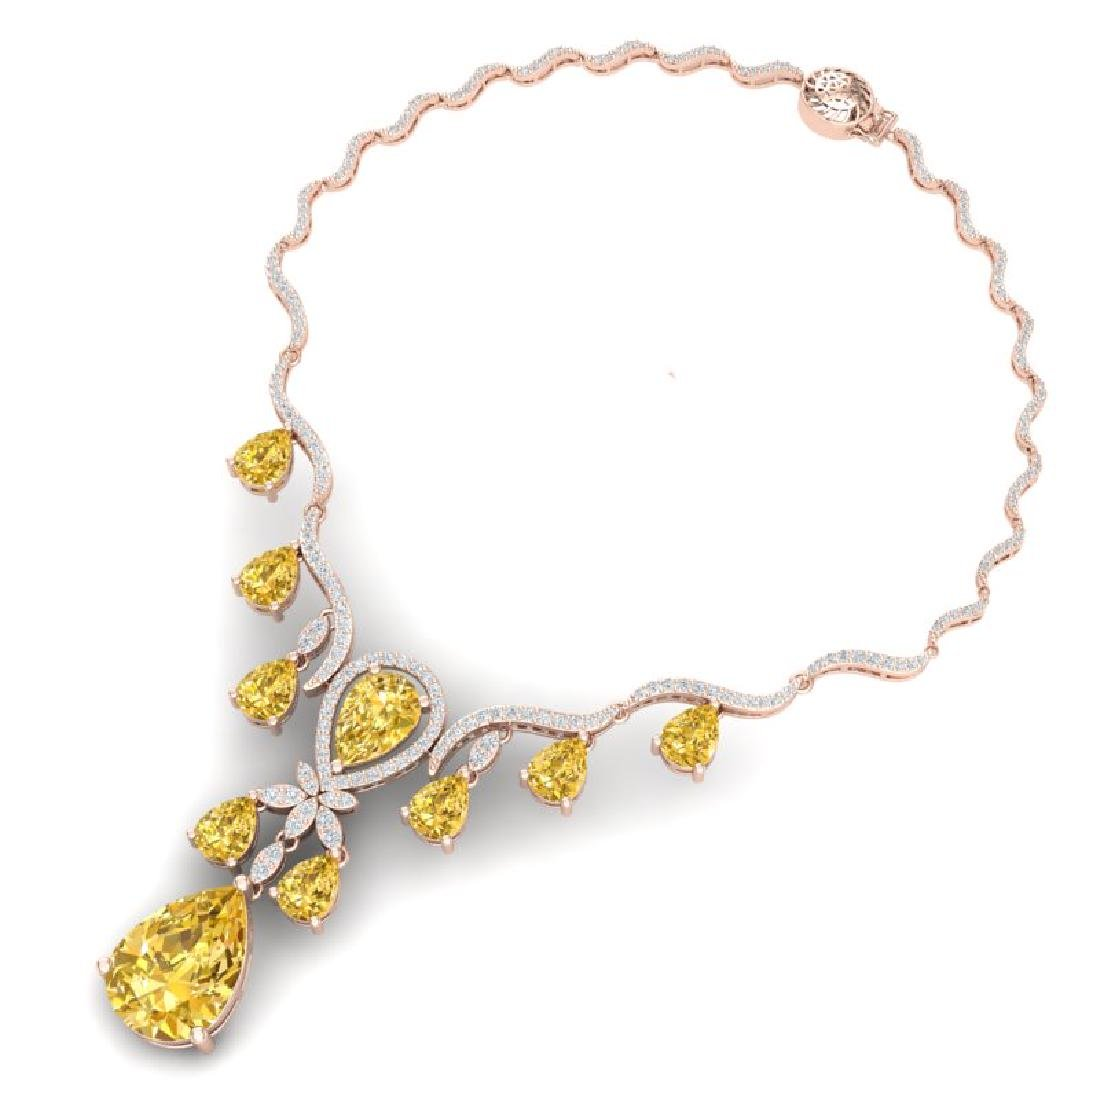 34.70 CTW Royalty Canary Citrine & VS Diamond Necklace - 3